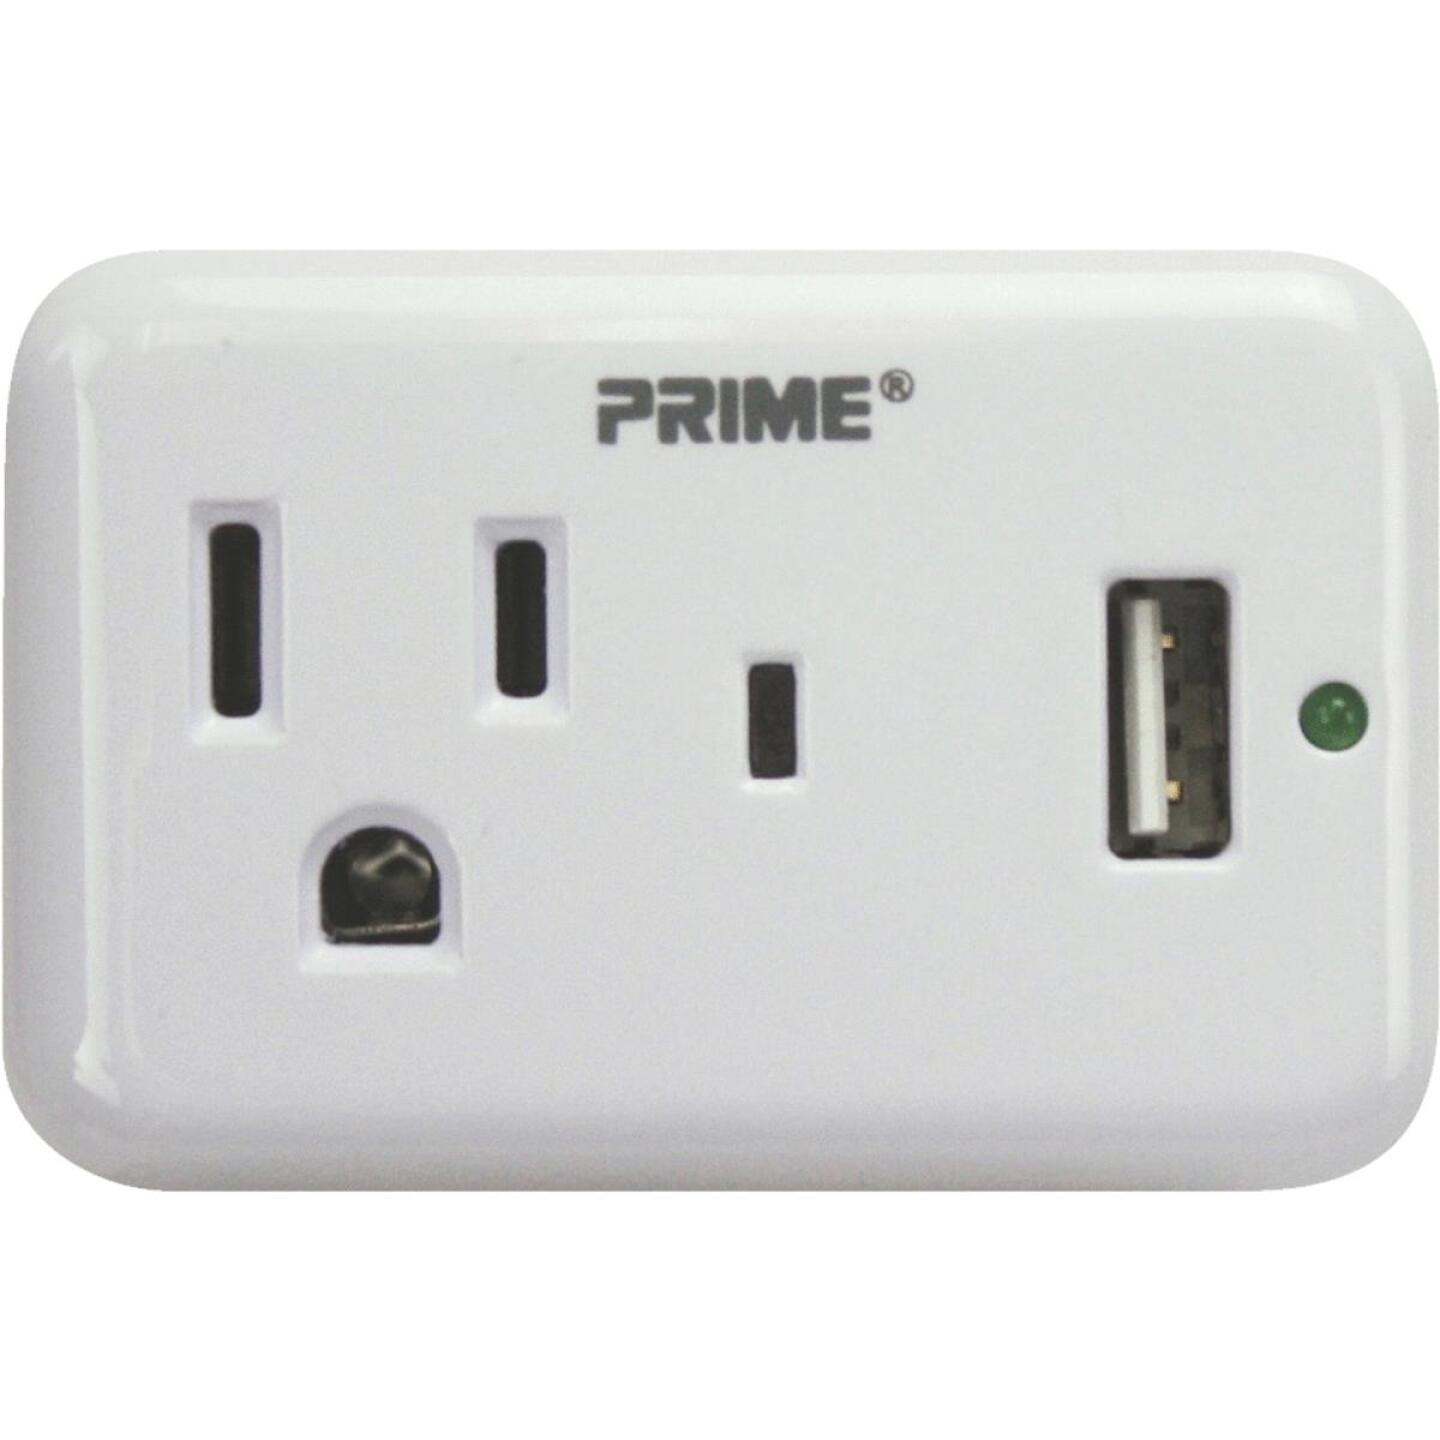 Prime Wire & Cable 1 Power & 1 USB White Wall Charger Image 1